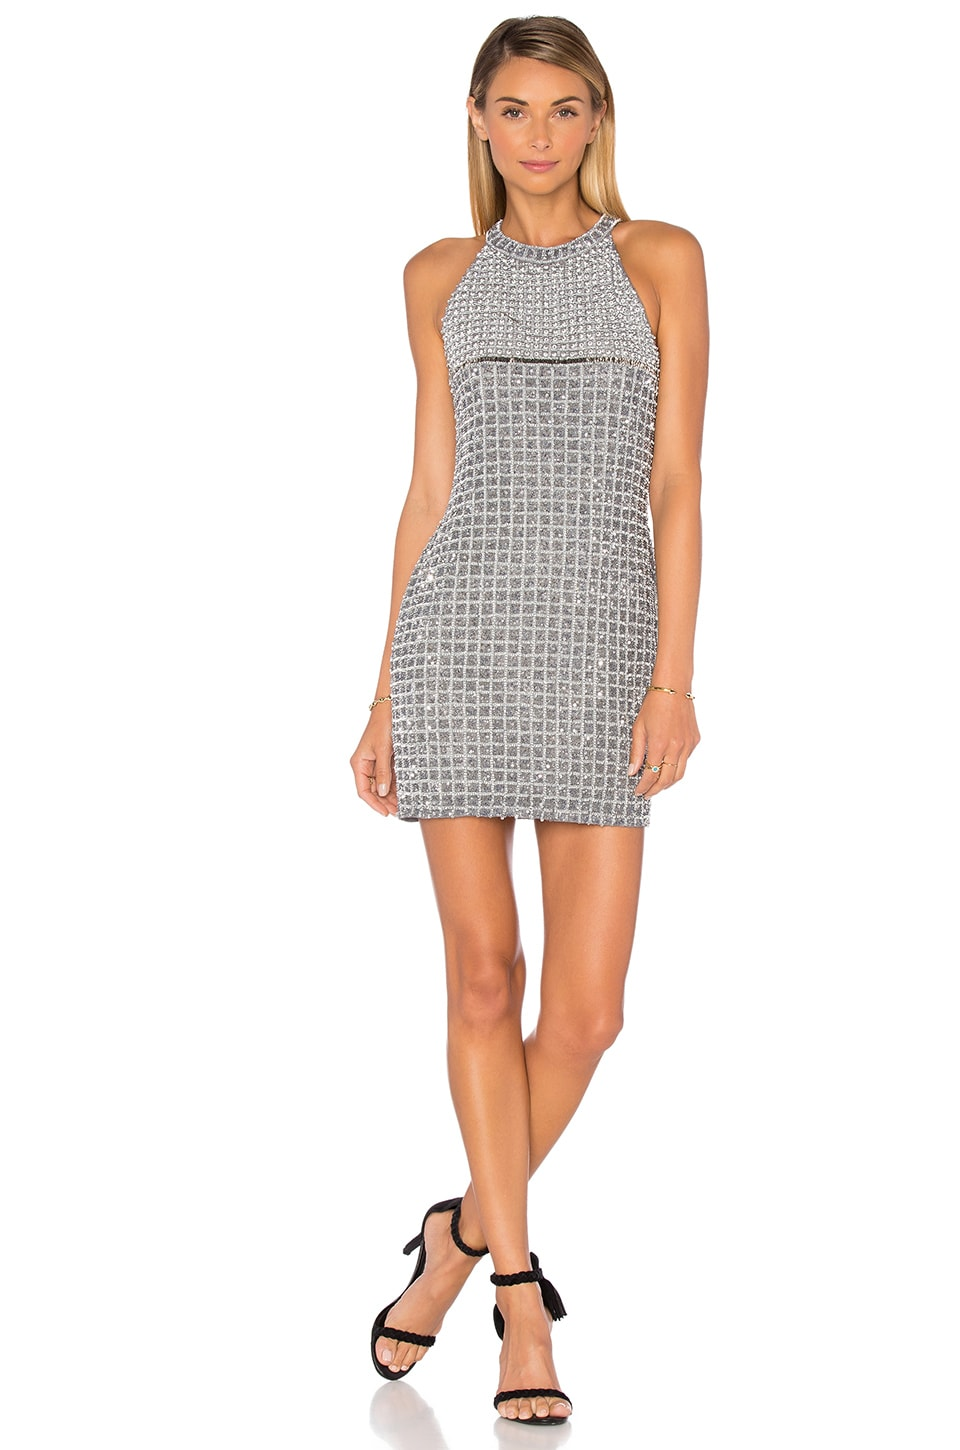 Parker Black Klum Embellished Dress in Grey